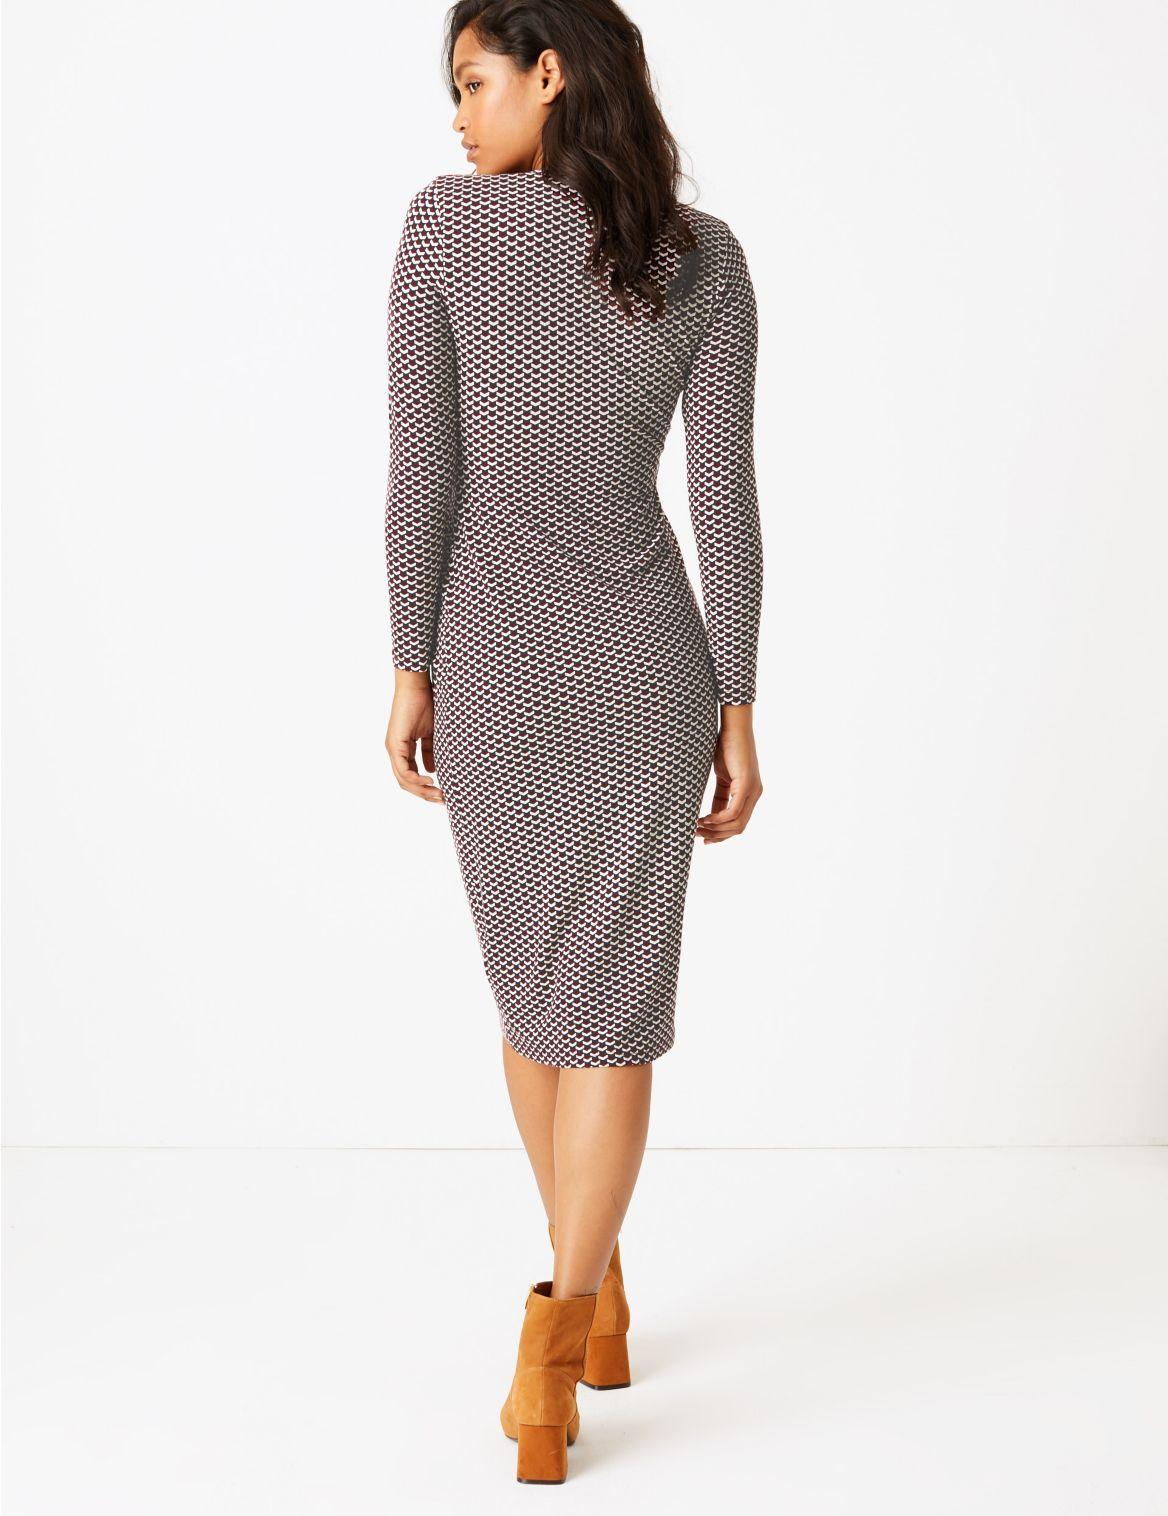 Marks and spencer bodycon dresses for a